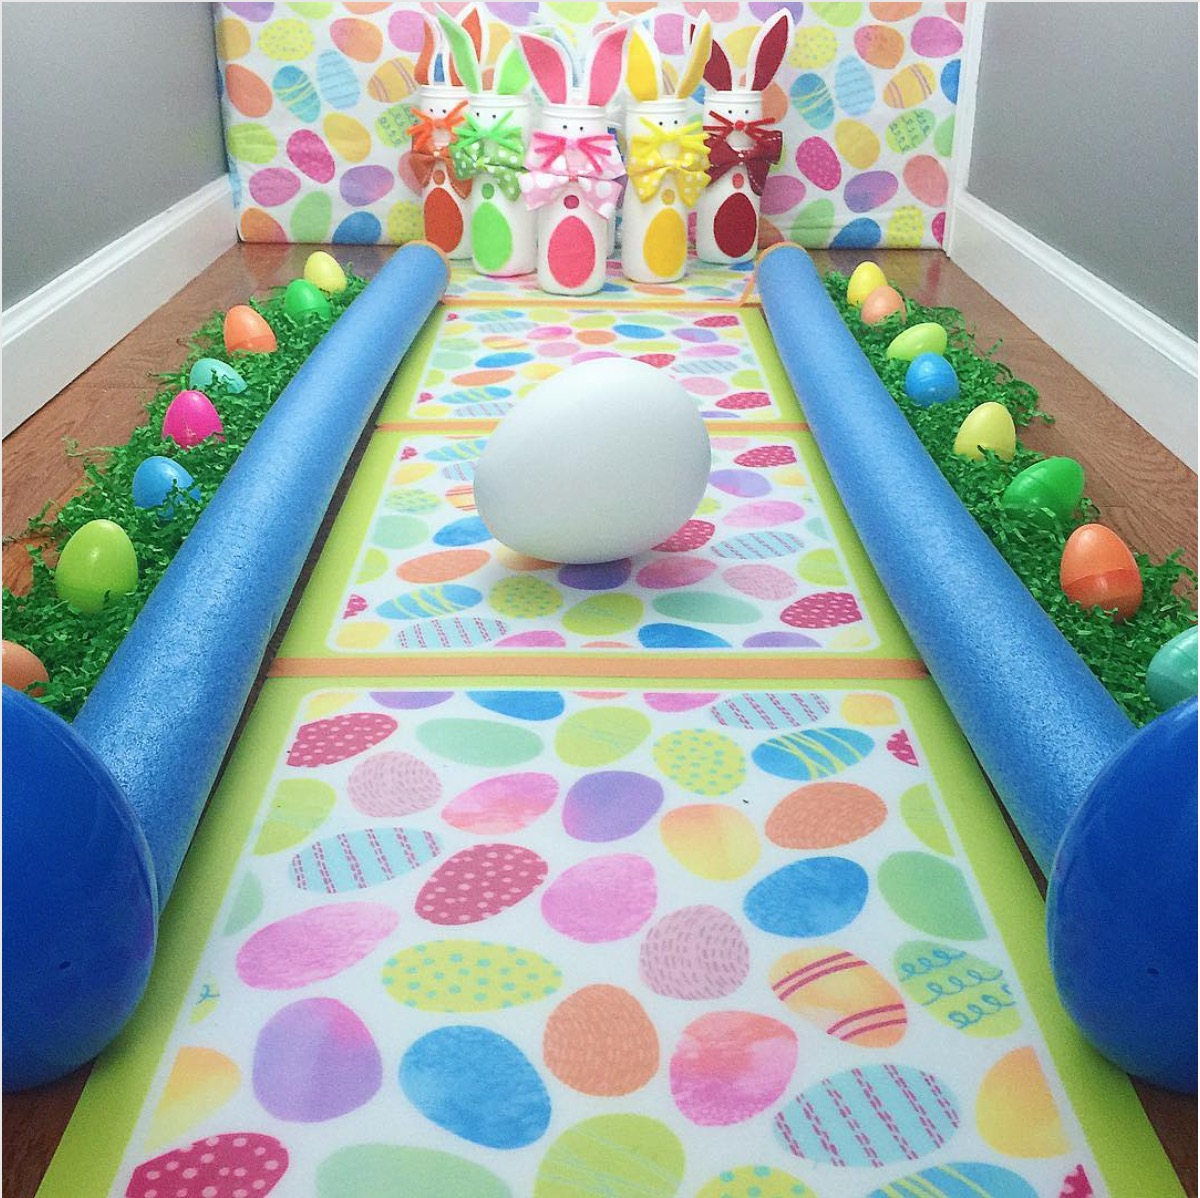 DIY Easter Bowling Alley